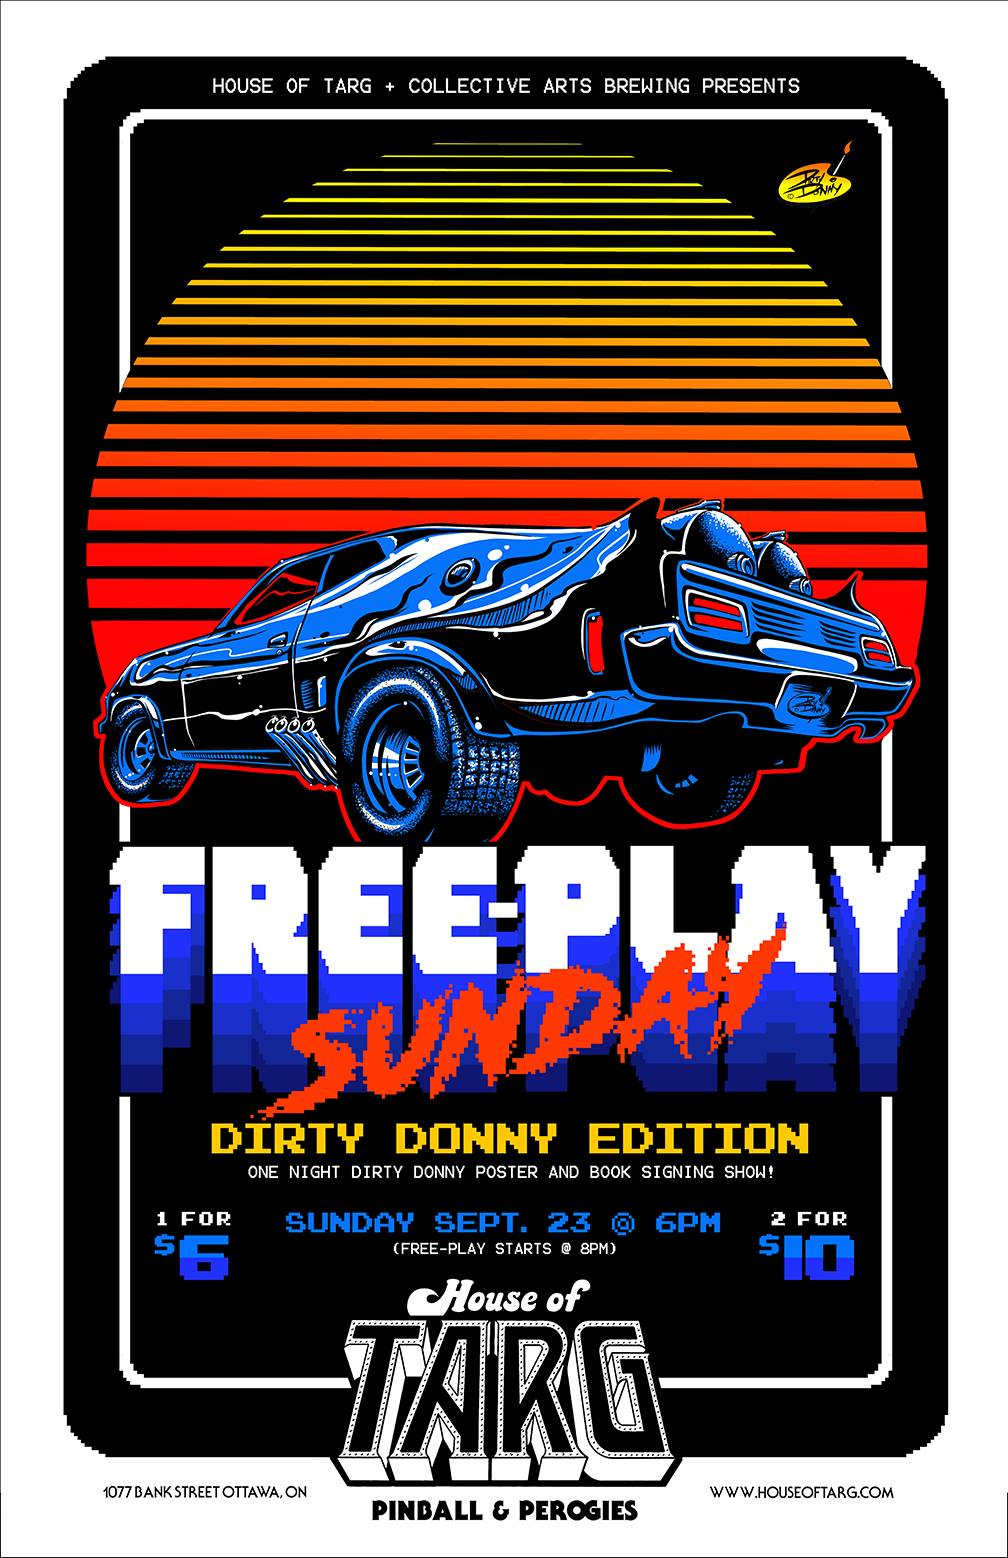 "Presented by:  Toughen Up ,  Collective Arts Brewing , House of TARG Doors: 8pm / *NEW * / Extra early arcade action Cover: $6 / 19+ System Hack: Bring a friend & pay $5 each  FREE-PLAY SUNDAY! + ONE NIGHT DIRTY DONNY POSTER AND BOOK SIGNING SHOW! + Unlimited Pinball & Arcade Action   Dirty Donny Gillies  POP-UP BOOK SIGNING AT TARG Dirty Donny Pop-up starts at 6pm, Unlimited Free-play at 8pm.  To those who know him personally he is just a humble hoser from Ottawa but to the rest of the world he is the renowned San Fransico punk artist who has produced incredible work for The Hellacopters, Vans, Snap-on Tools, Creature Skateboards & of course Stern Pinball (Metallica, Can Crusher & Aerosmith). He will be returning to his old stomping grounds to mix a little business with pleasure this month. He will be signing his rad art book ""Wizards & Blacklight Destroyers"" & will have new and current prints, books and other merchandise for sale at TARG for SUNDAY FREEPLAY (& will be at the  Ottawa Pinball Show 2018  Sept 22-23 at the Nepean Sportsplex.  Oh Ya be sure to subscribe to his Youtube series DonnyTV.  KILLER TUNES: DJ KJMAXX & Guests, spinning 100% vinyl arcade jamz. Sleaze rock, Punk, Metal & retro Synth tunes to provide the soundtrack to your highscore pursuits.   ALL GAMES SET TO FREE-PLAY: 17 Pinball Machines, 25 Classic Arcade Cabinets, Over 100 Playable Titles.  http://www.houseoftarg.com/pinball-classic-arcade-game/   $1 OFF BEERS:  Collective Arts Brewing  Lunch Money Ale Tall Cans Only $7  CHALLENGE MODE ON THE BIG SCREEN: ALL THIS MONTH - Have a go at our Super NES Classic Edition. It has the original look and feel, only smaller, and pre-loaded with 21 games! BE THE ARCADE HERO.  HACK THE SYSTEM: Bring a friend to get in cheap. $6 for 1 / $10 for 2.  LATE NITE PEROGIES Handmade Perogi Wizard Boxes Served until Late incase hunger strikes in the nite.   http://www.houseoftarg.com/concert-listings-events/free-play-sunday-dirty-donny-pop-up-book-signing-unlimited-pinball-arcade-action"